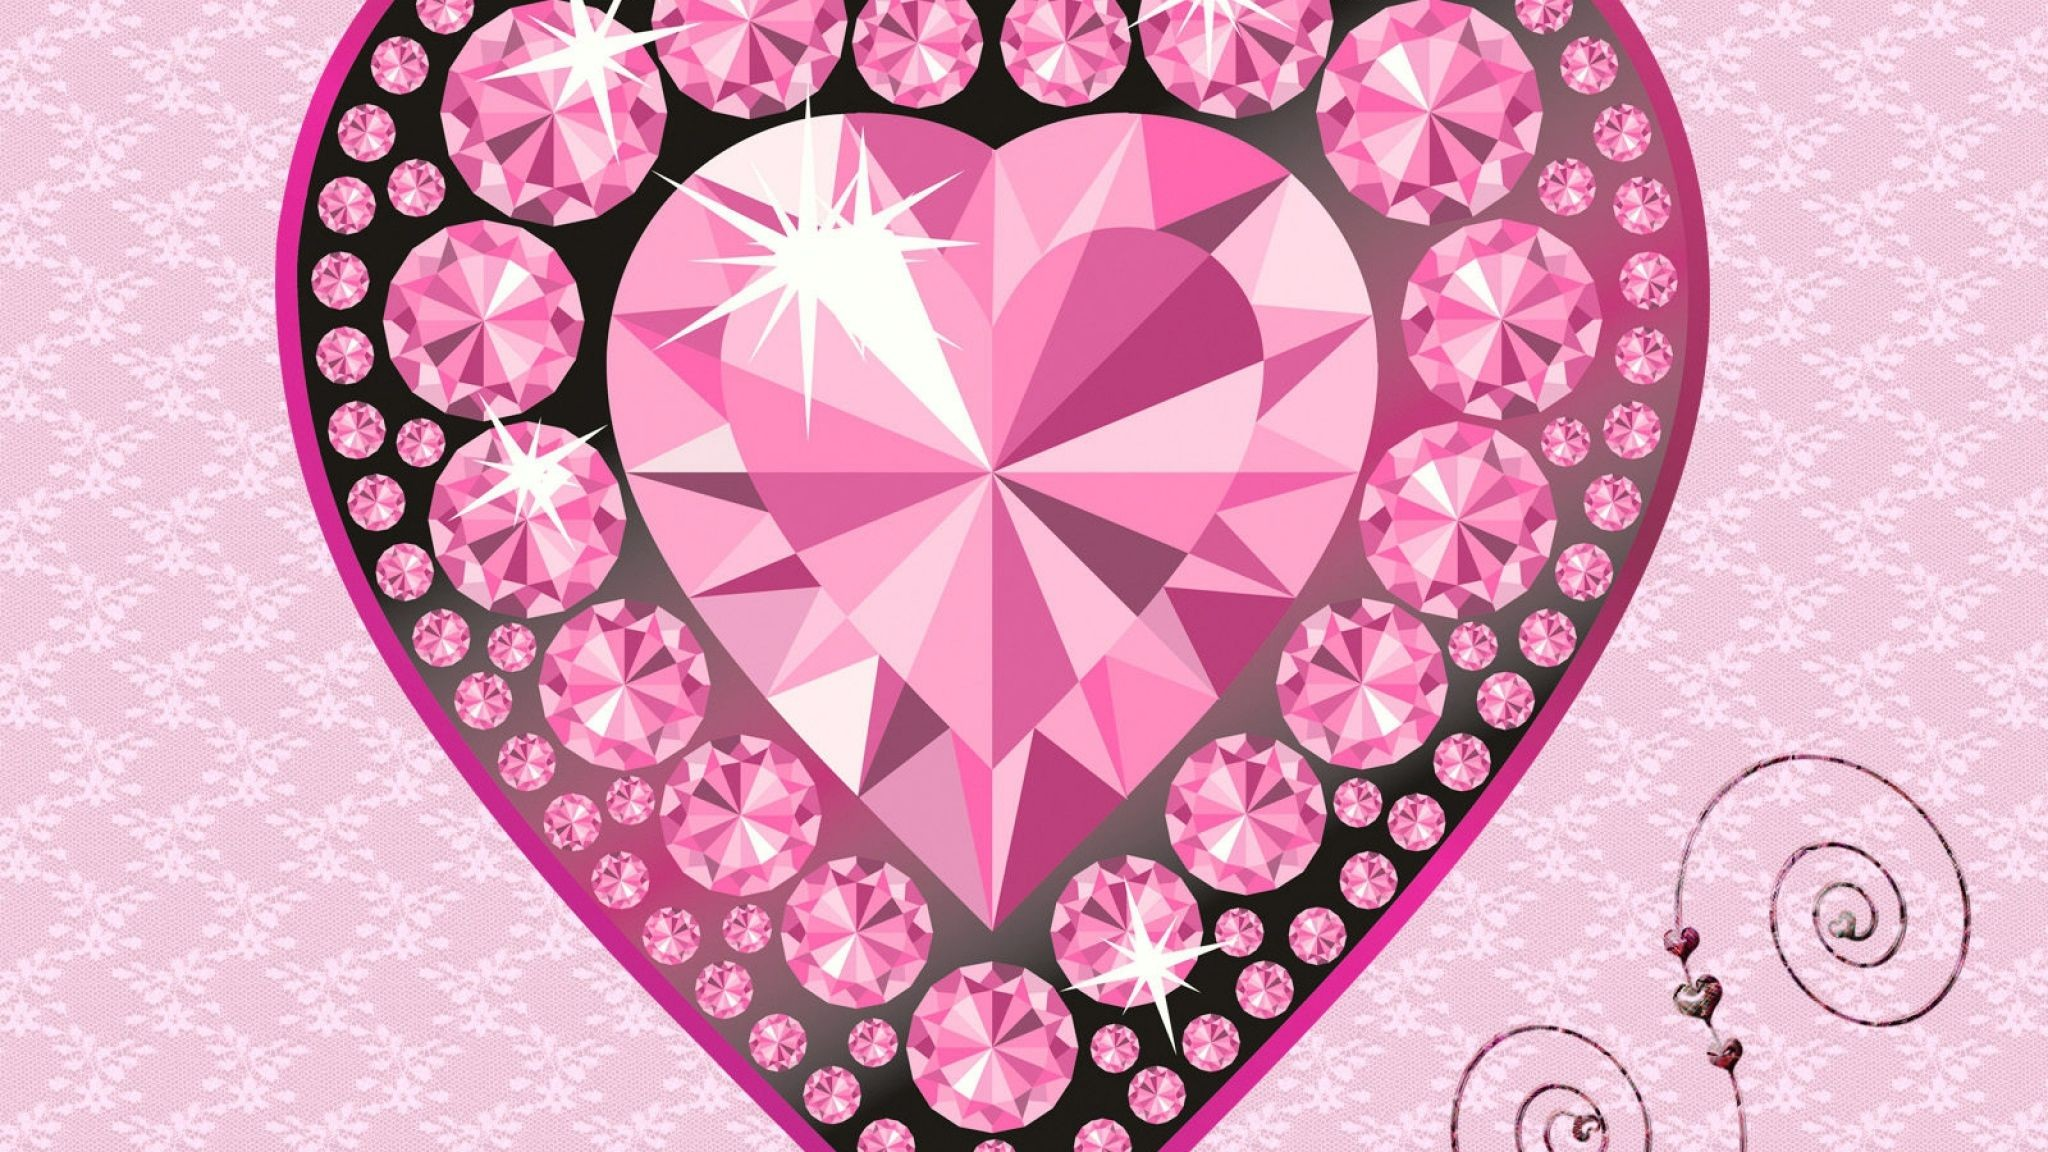 Res: 2048x1152, Pink Diamond Wallpapers Group